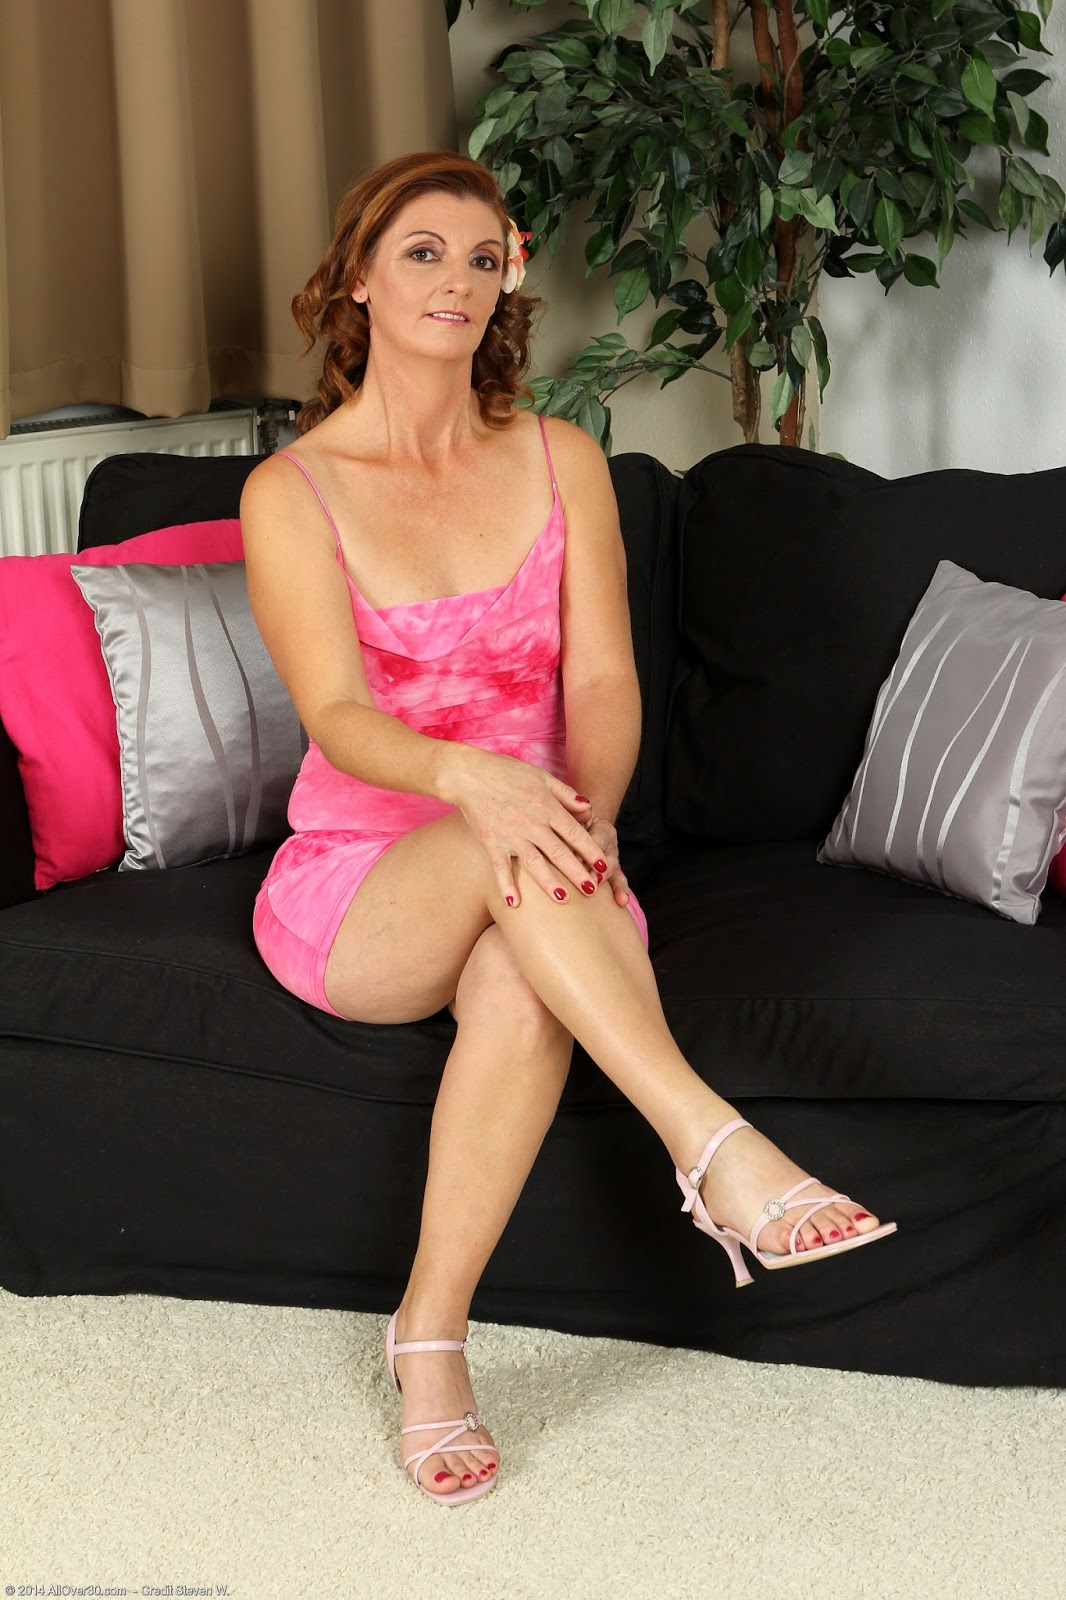 archive of old women: Mature Linda L